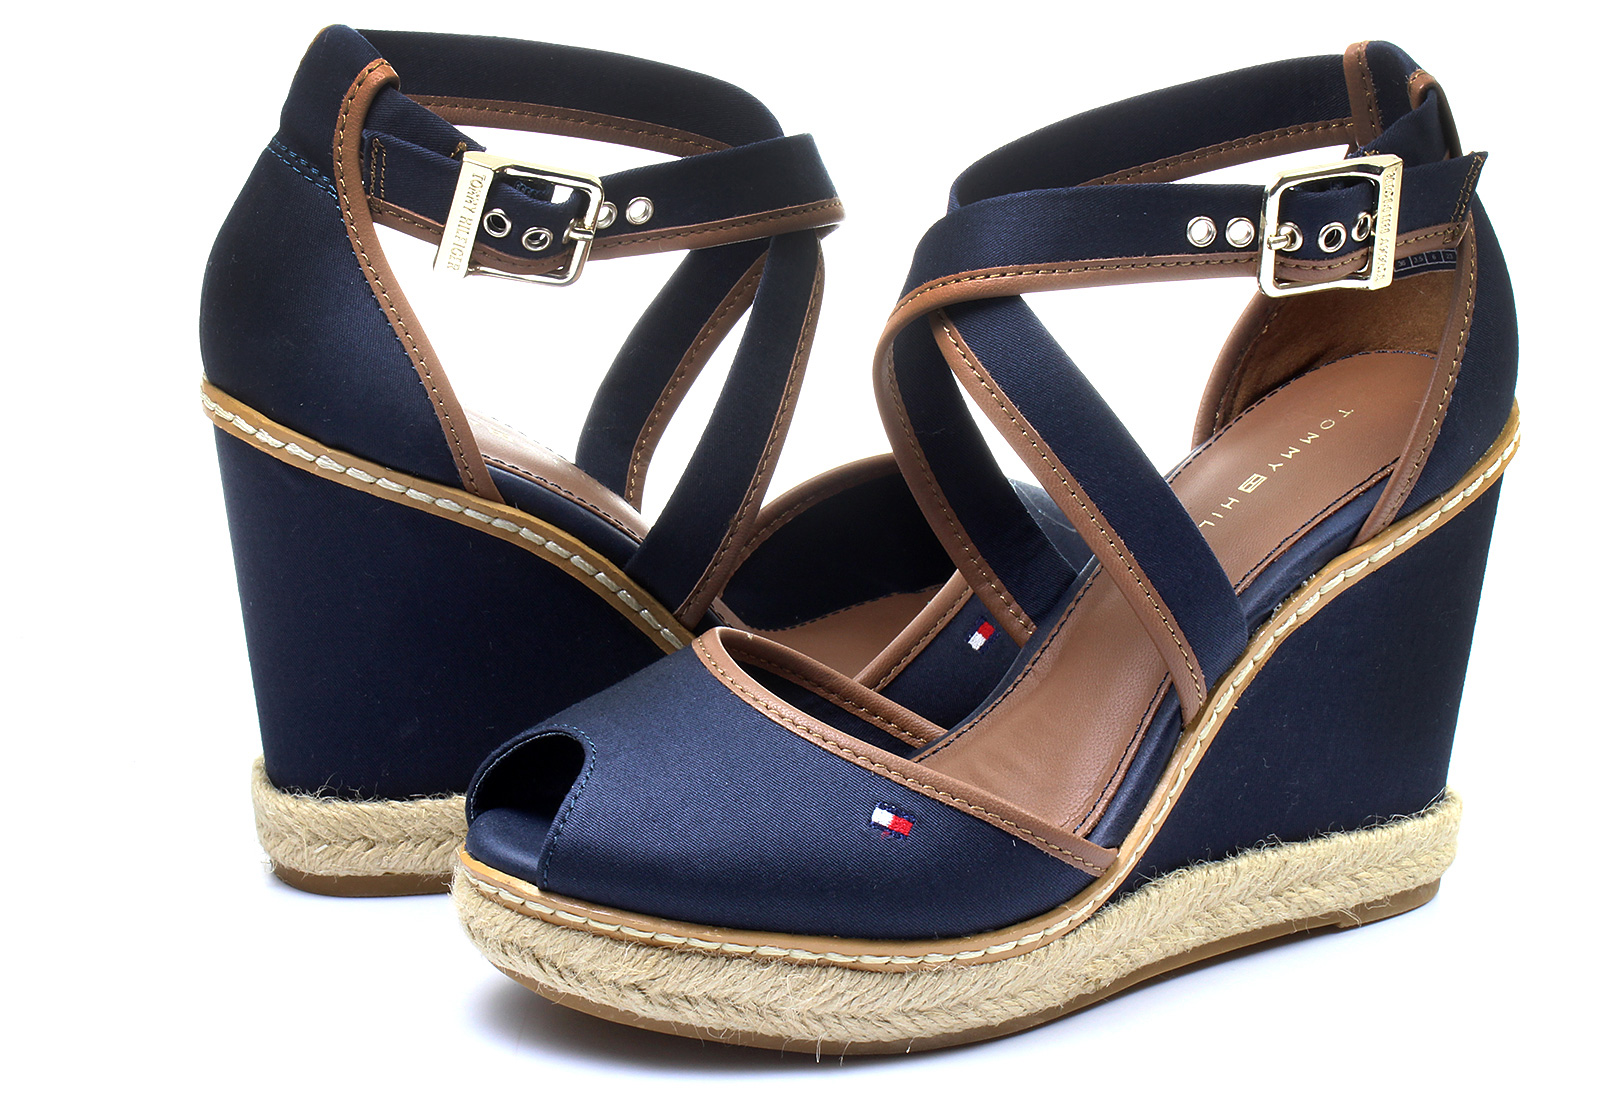 tommy hilfiger sandals emery 50d 14s 6768 403 online shop for sneakers shoes and boots. Black Bedroom Furniture Sets. Home Design Ideas